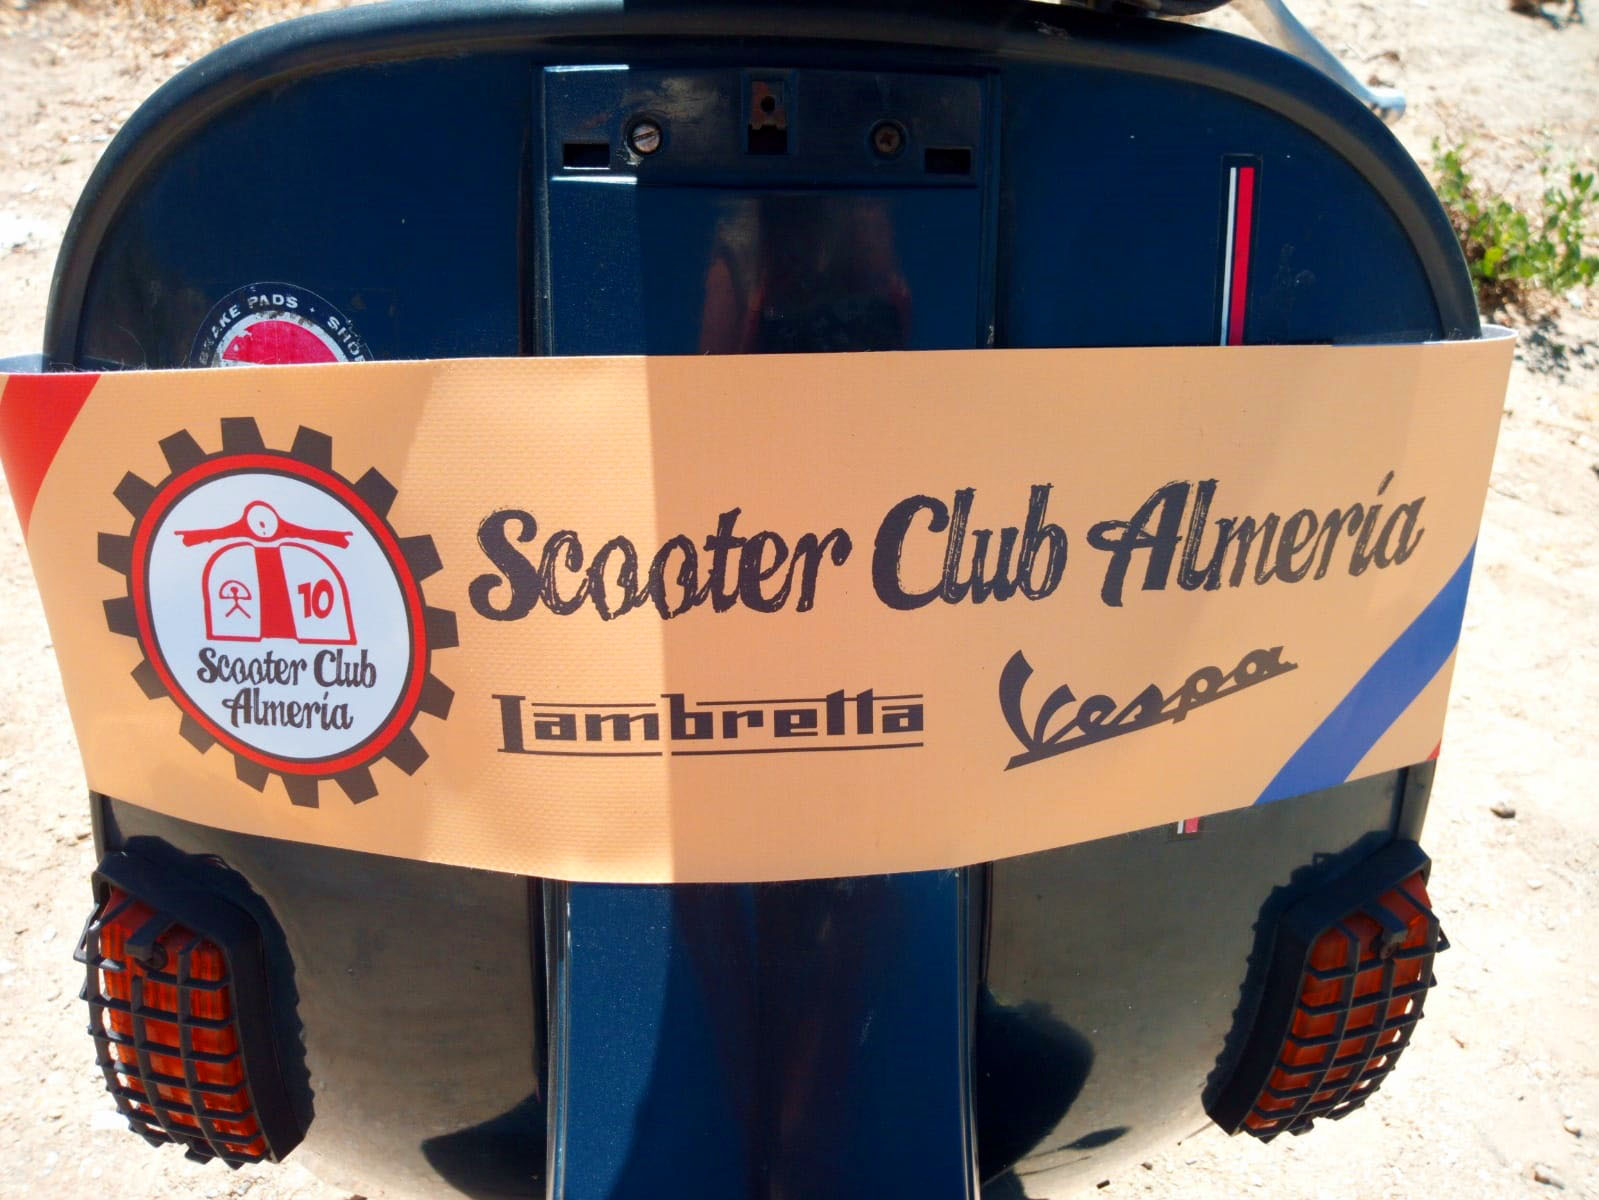 Scooter Club Almería